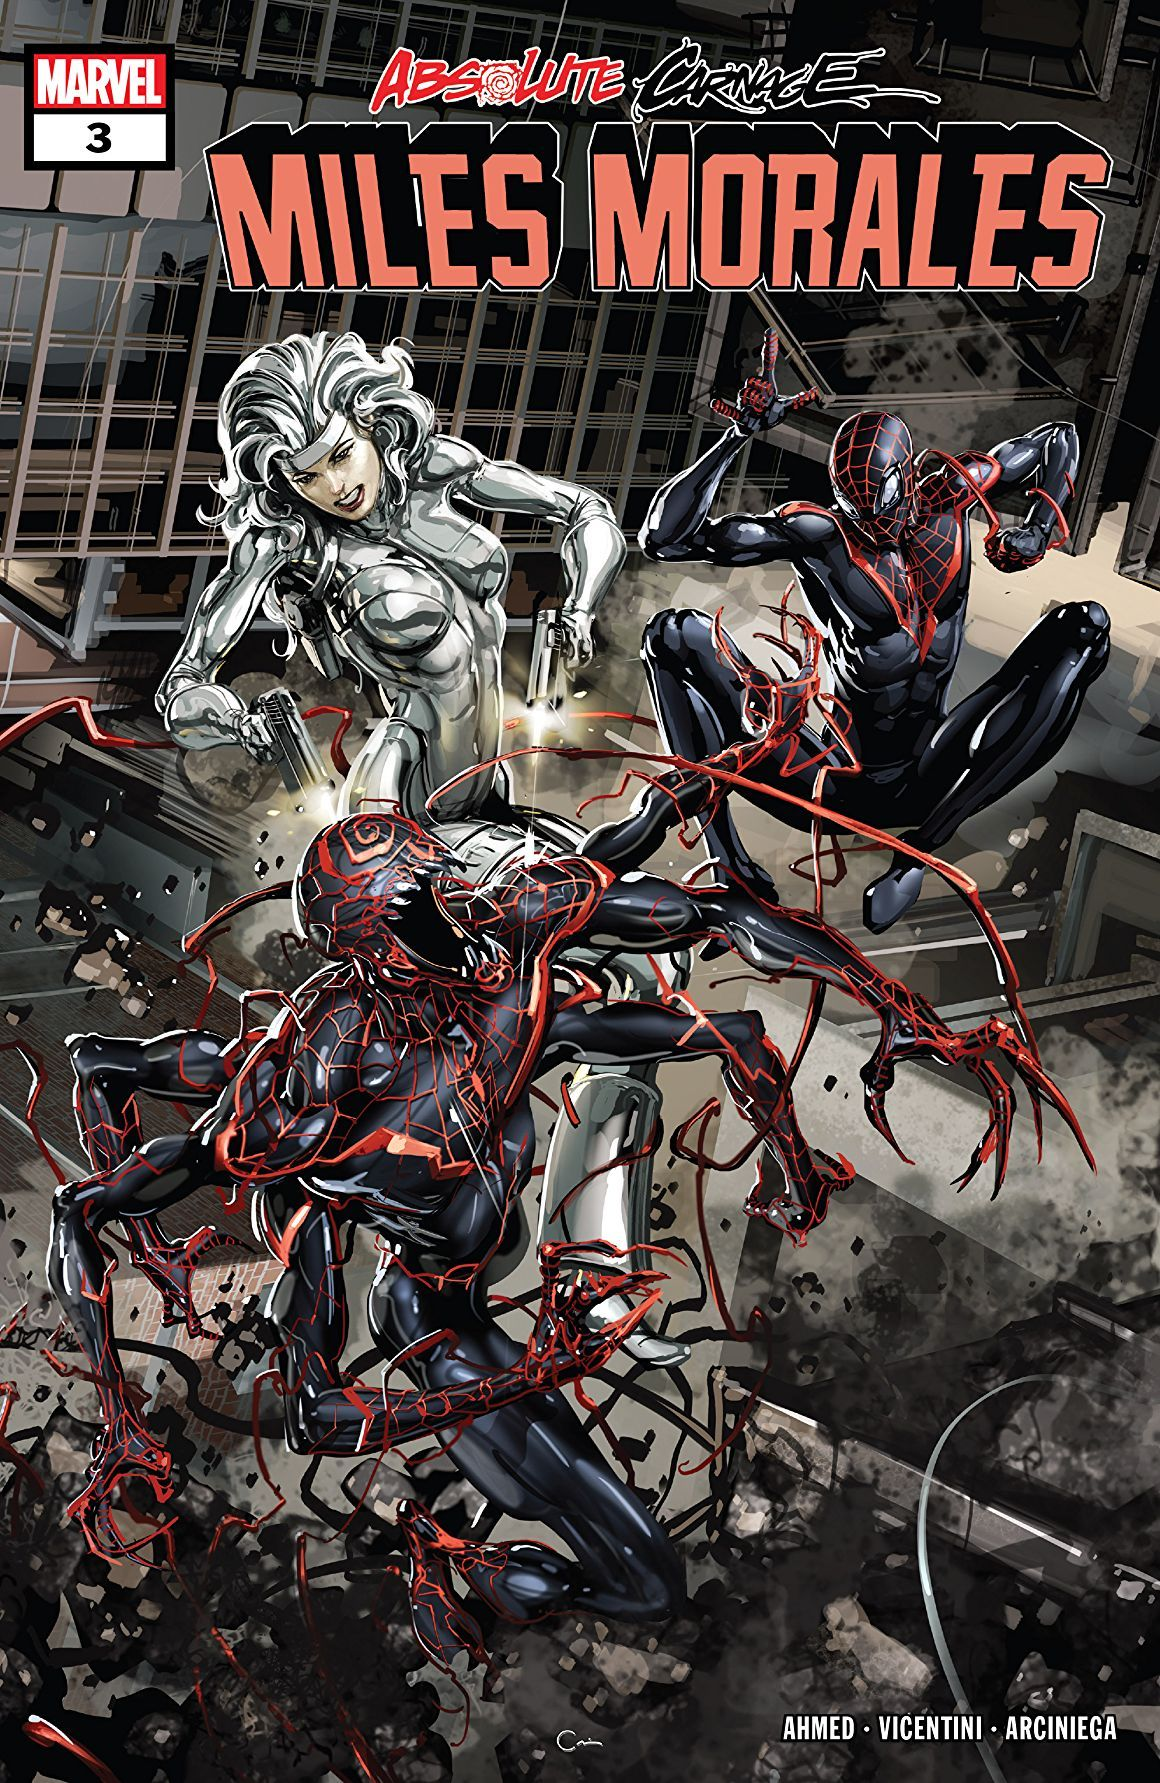 Absolute carnage miles morales 2019 3 of 3 miles